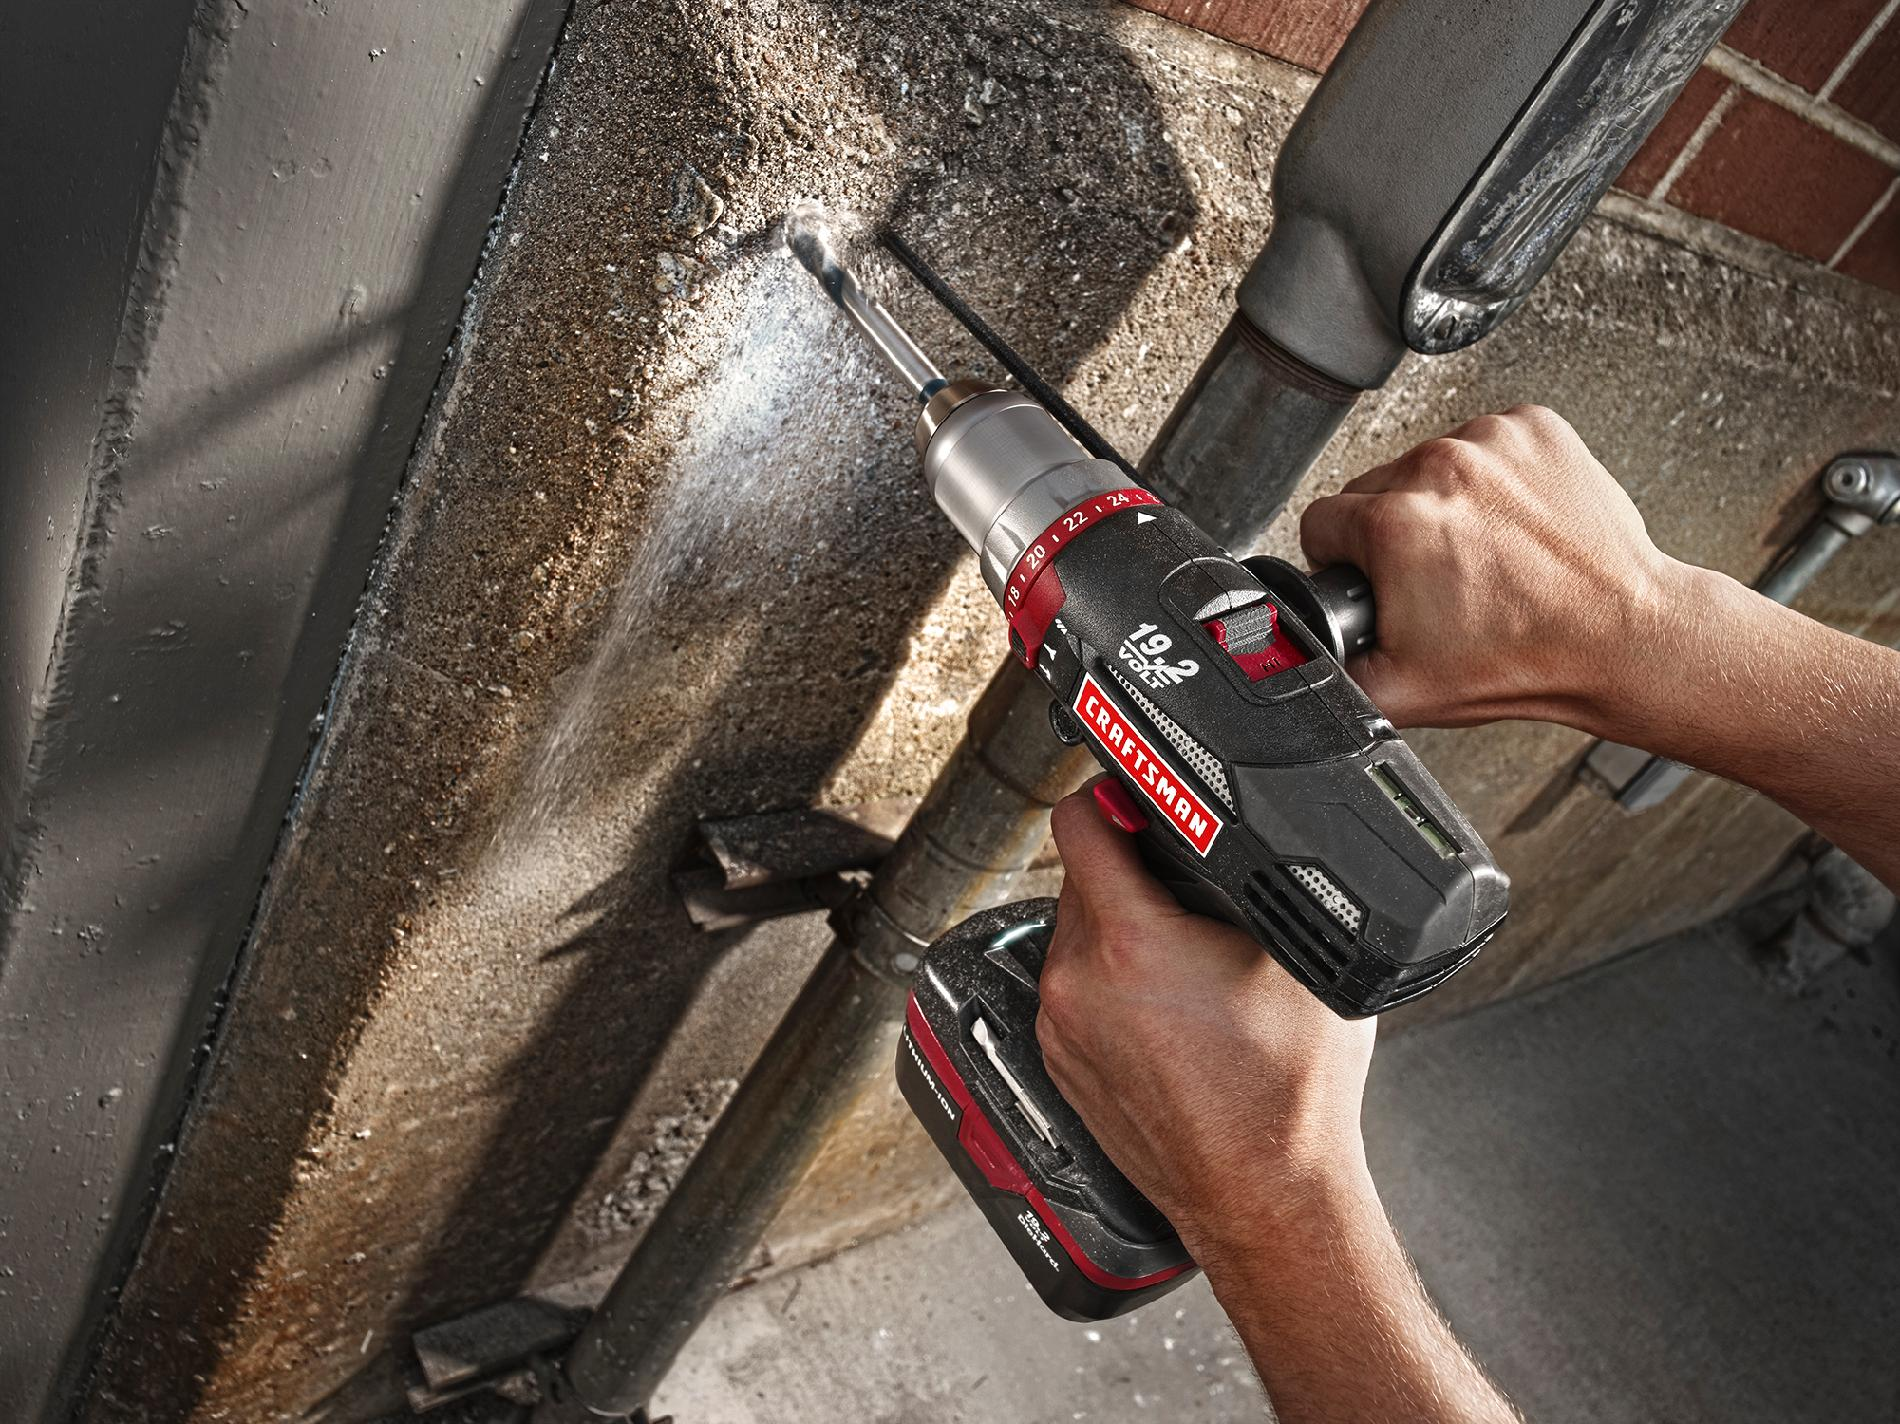 Craftsman C3 19.2V Lithium-Ion Hammer Drill Kit